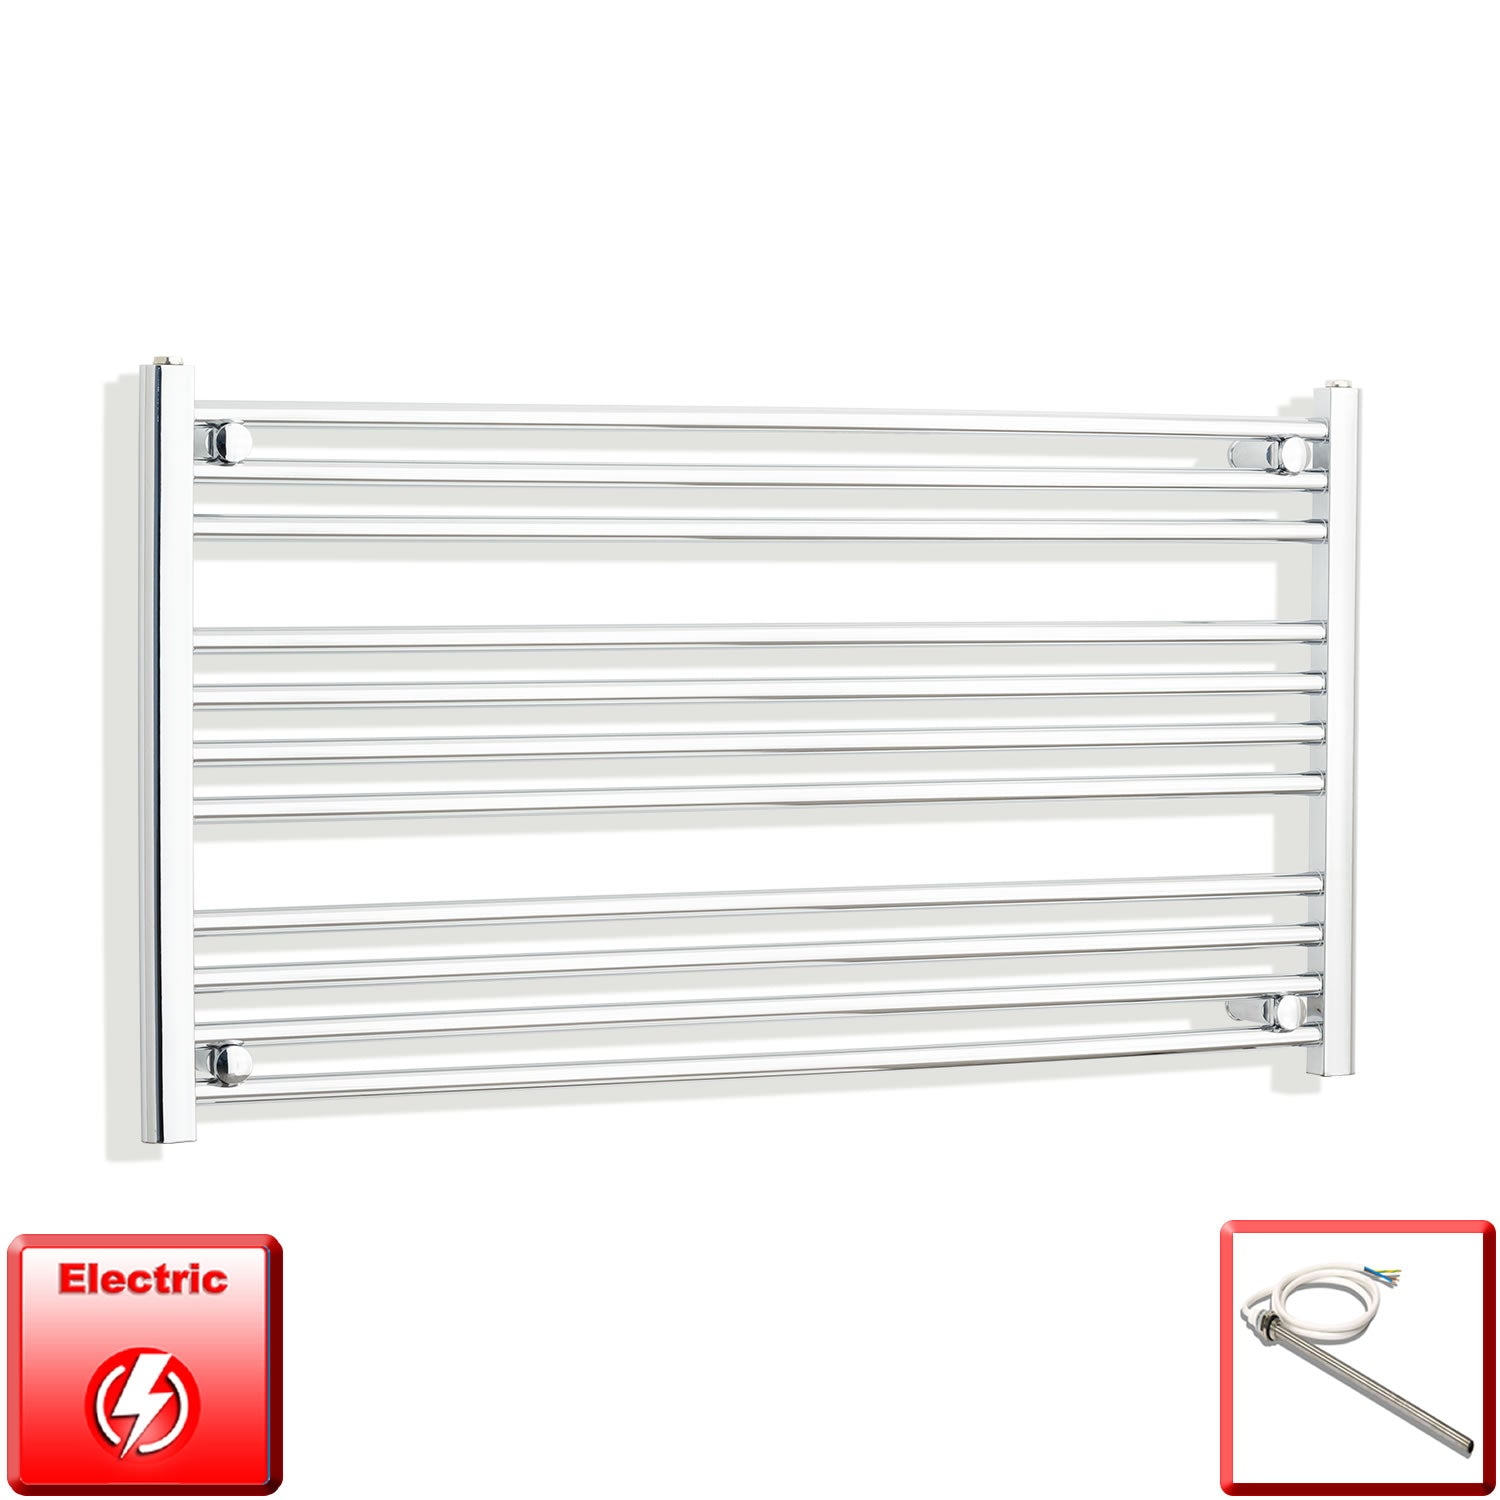 1000mm Wide 600mm High Flat Chrome Pre-Filled Electric Heated Towel Rail Radiator HTR,Single Heat Element